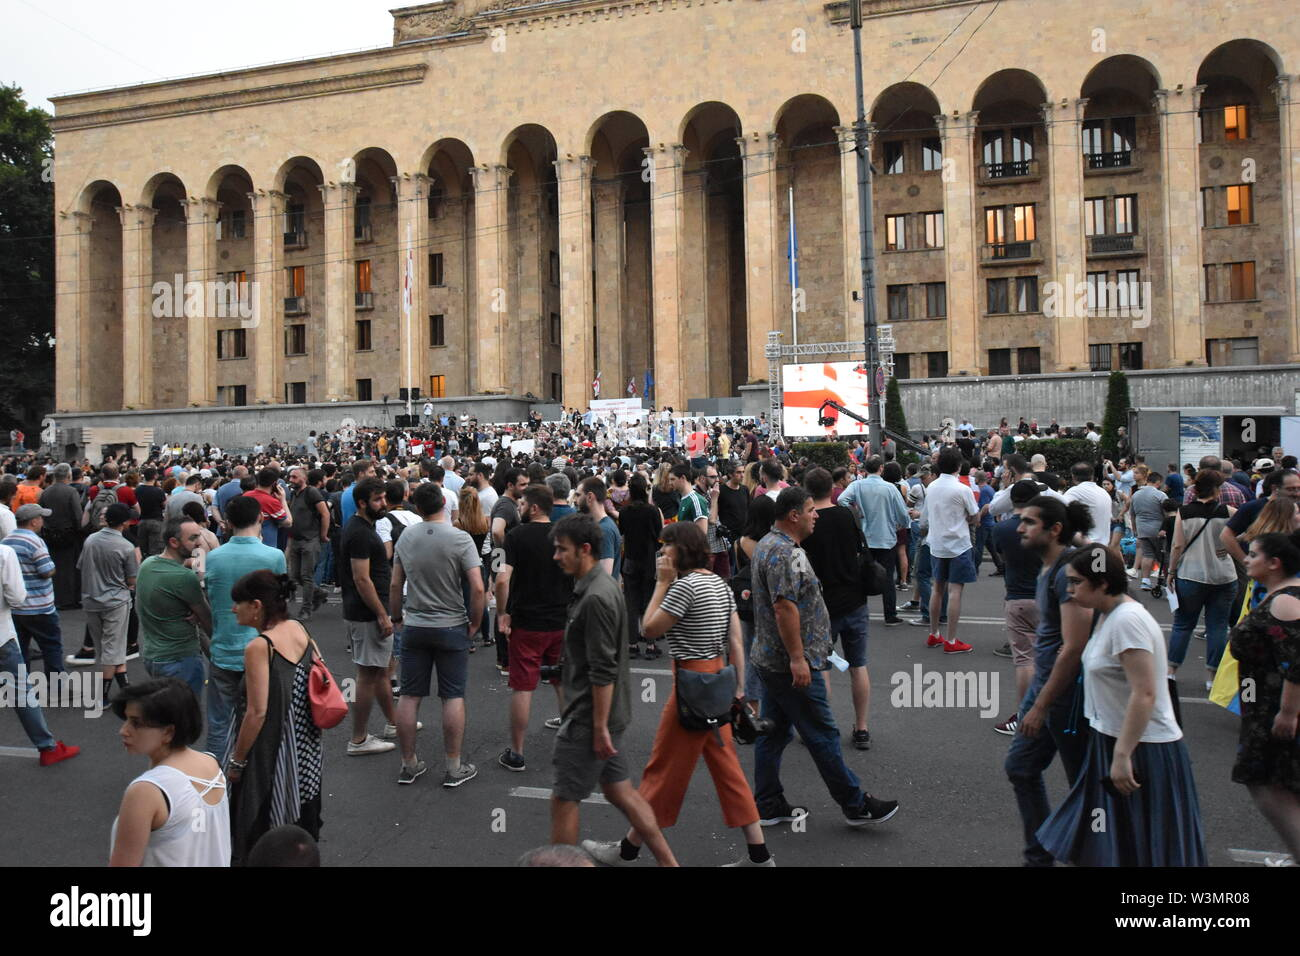 Anti-Russian Demonstrations in Tbilisi, Georgia (Country) 23rd June 2019 Stock Photo